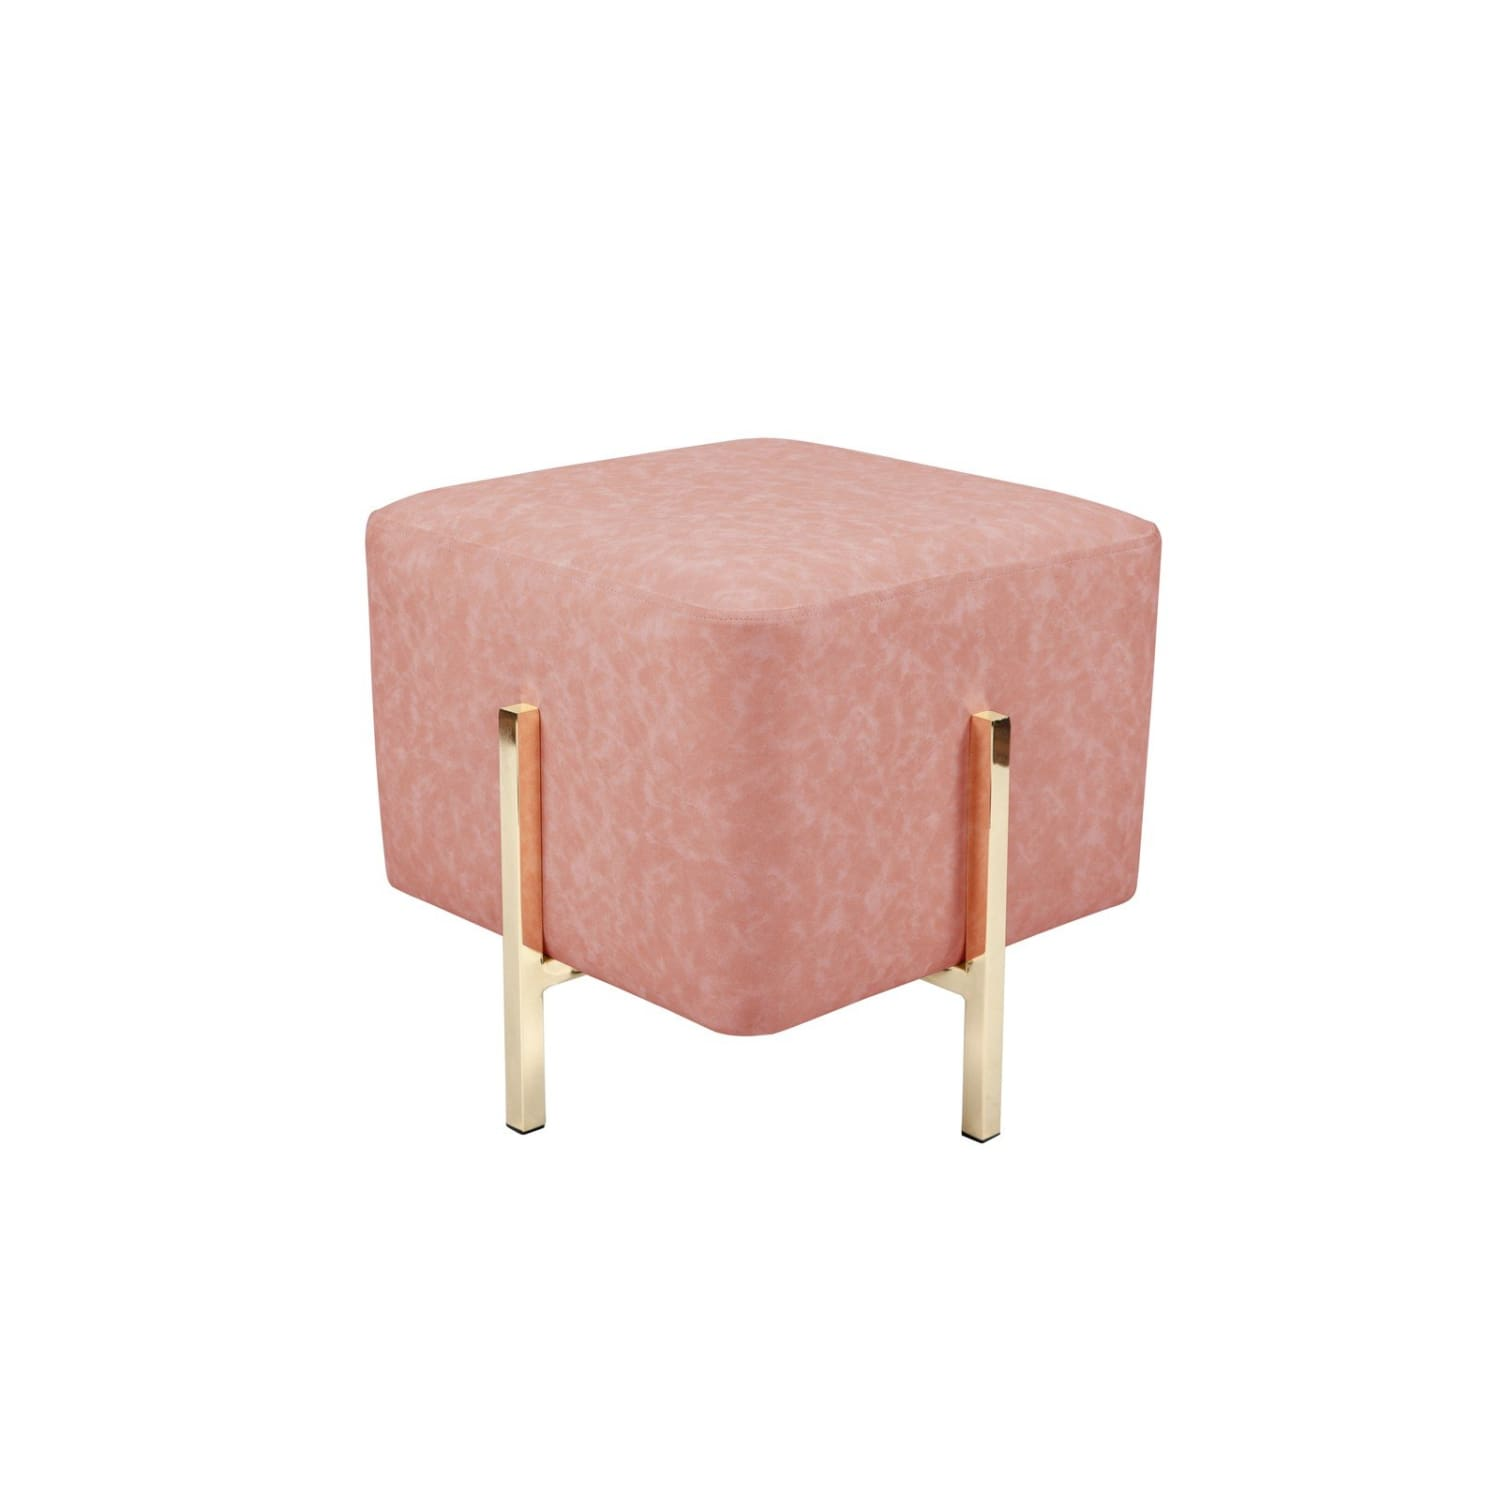 Pouf - Tabouret - Lizia 210 Rose / Or